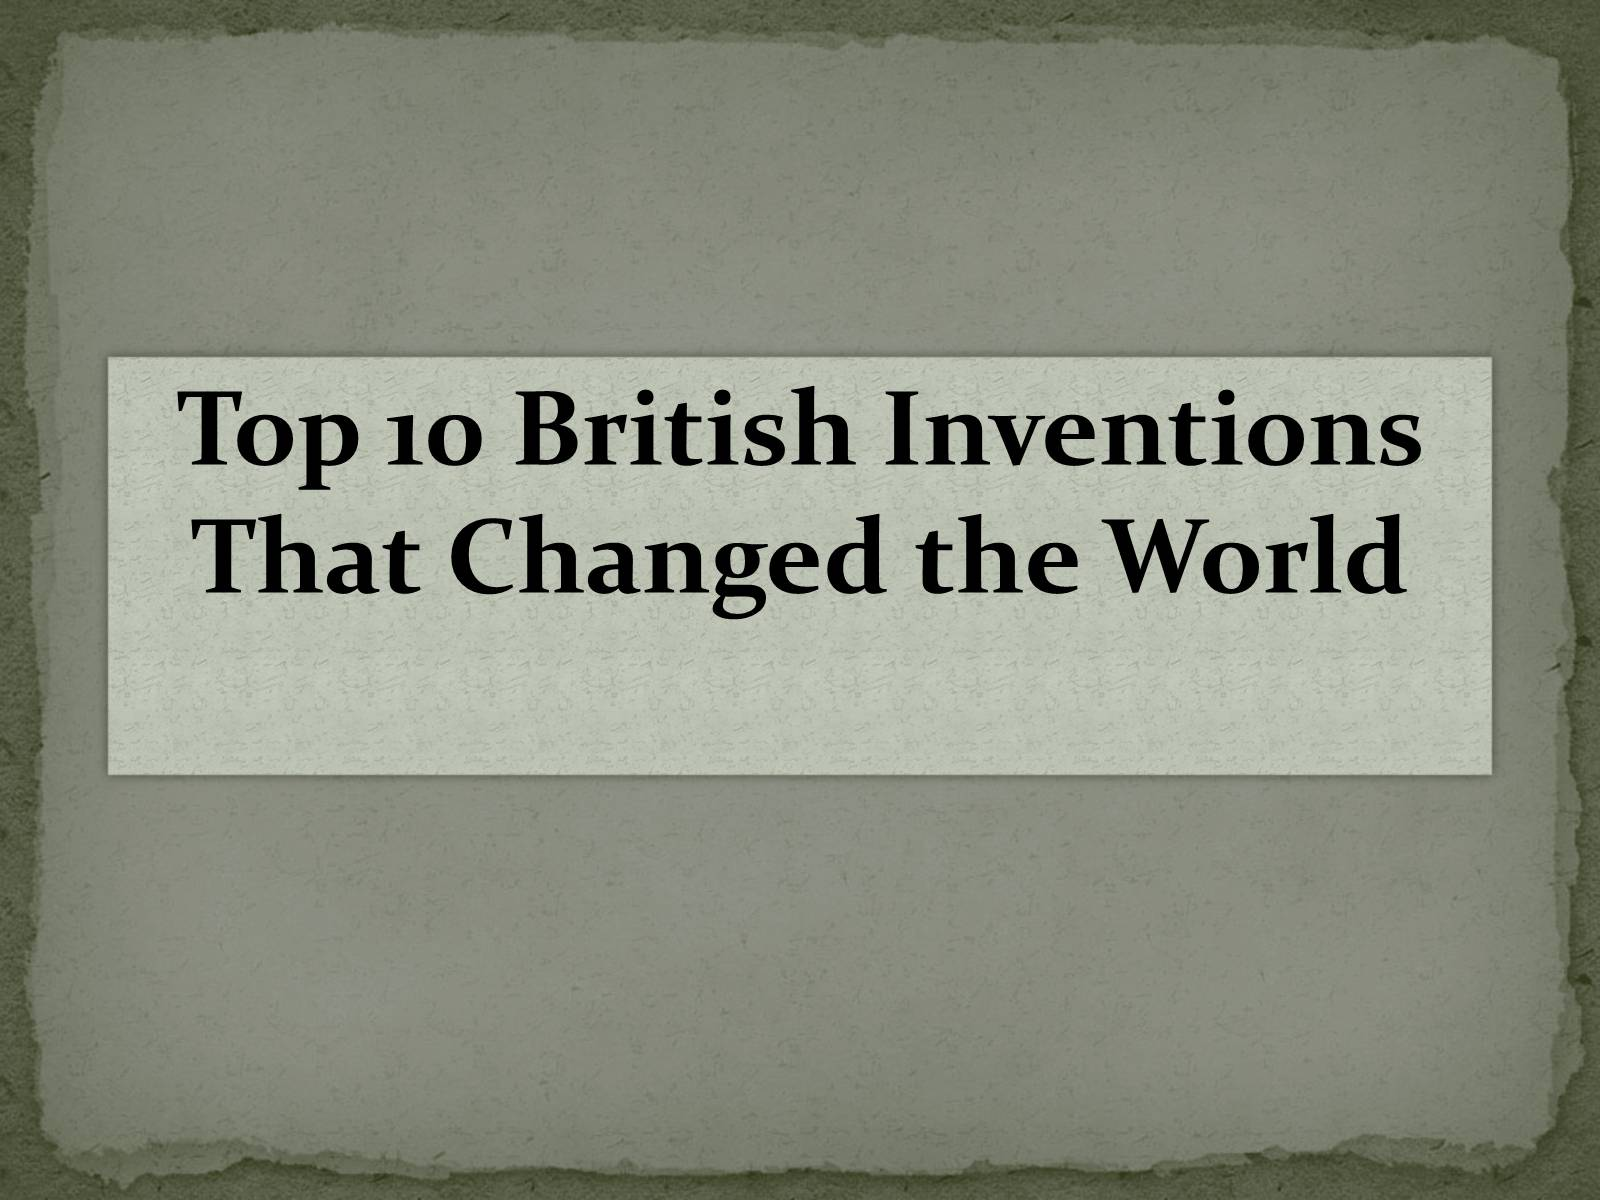 Презентація на тему «Top 10 British Inventions That Changed the World»